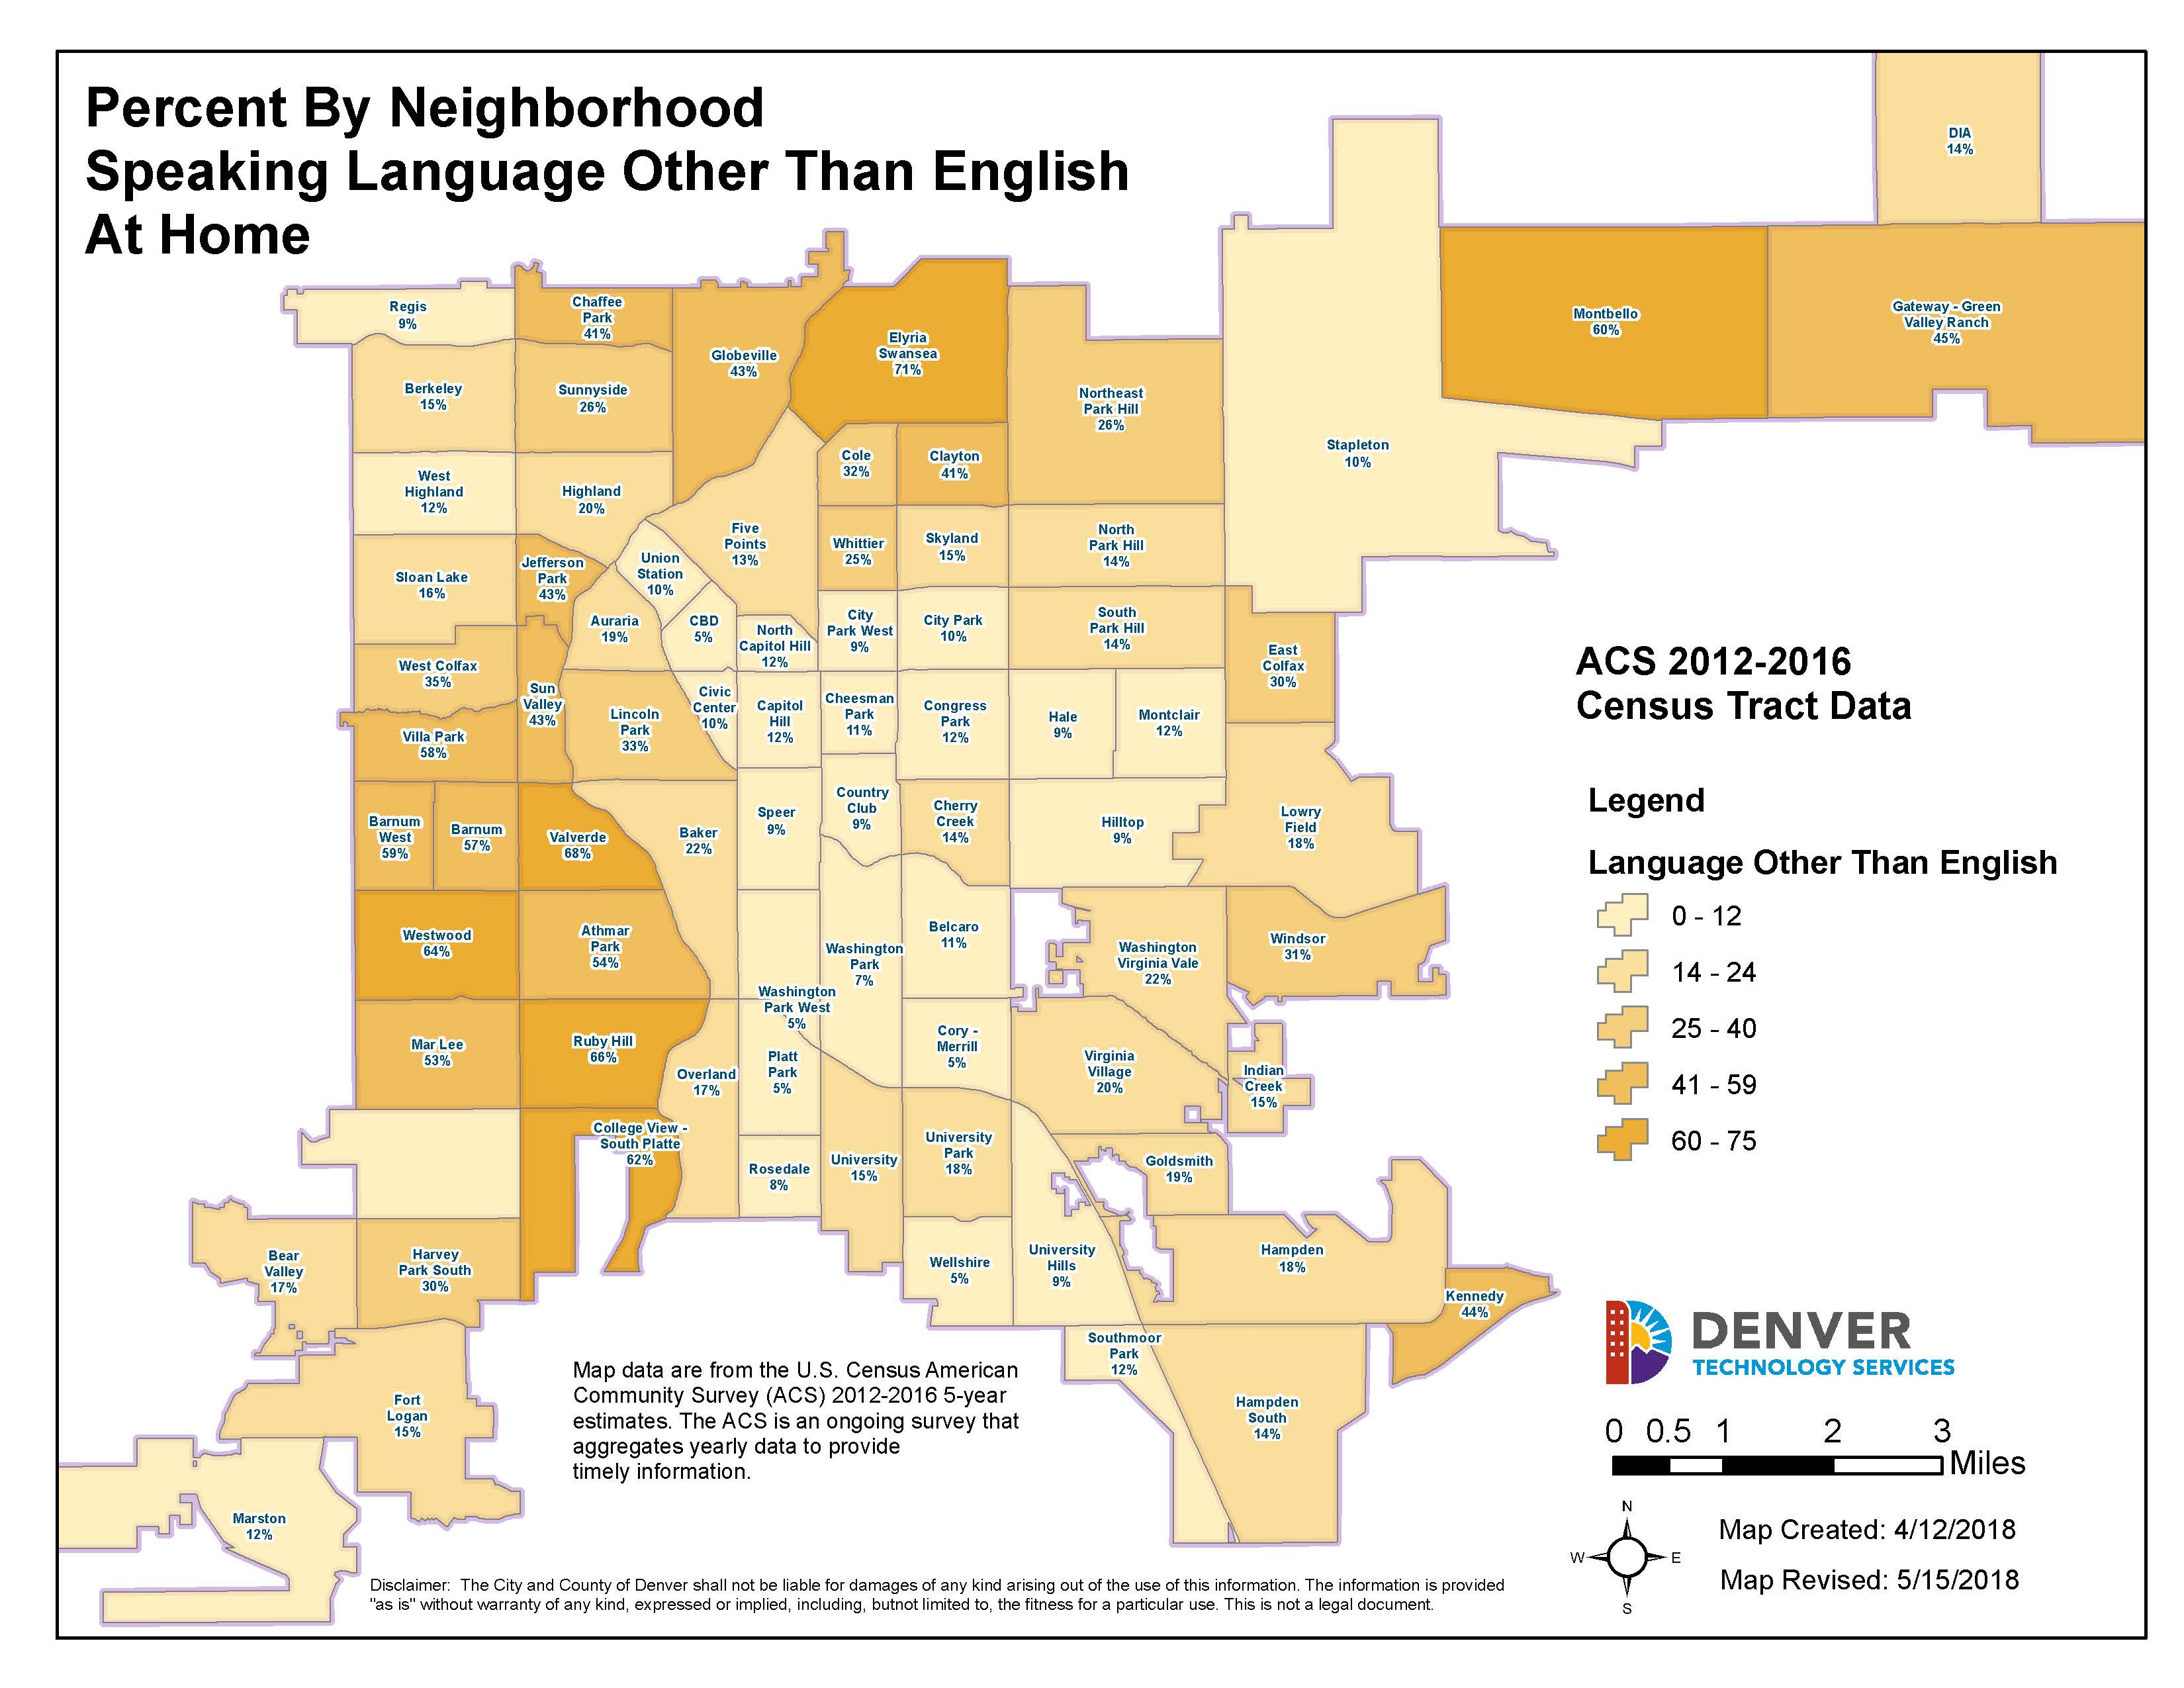 map: speak language other than English at home by percentage by neighborhood